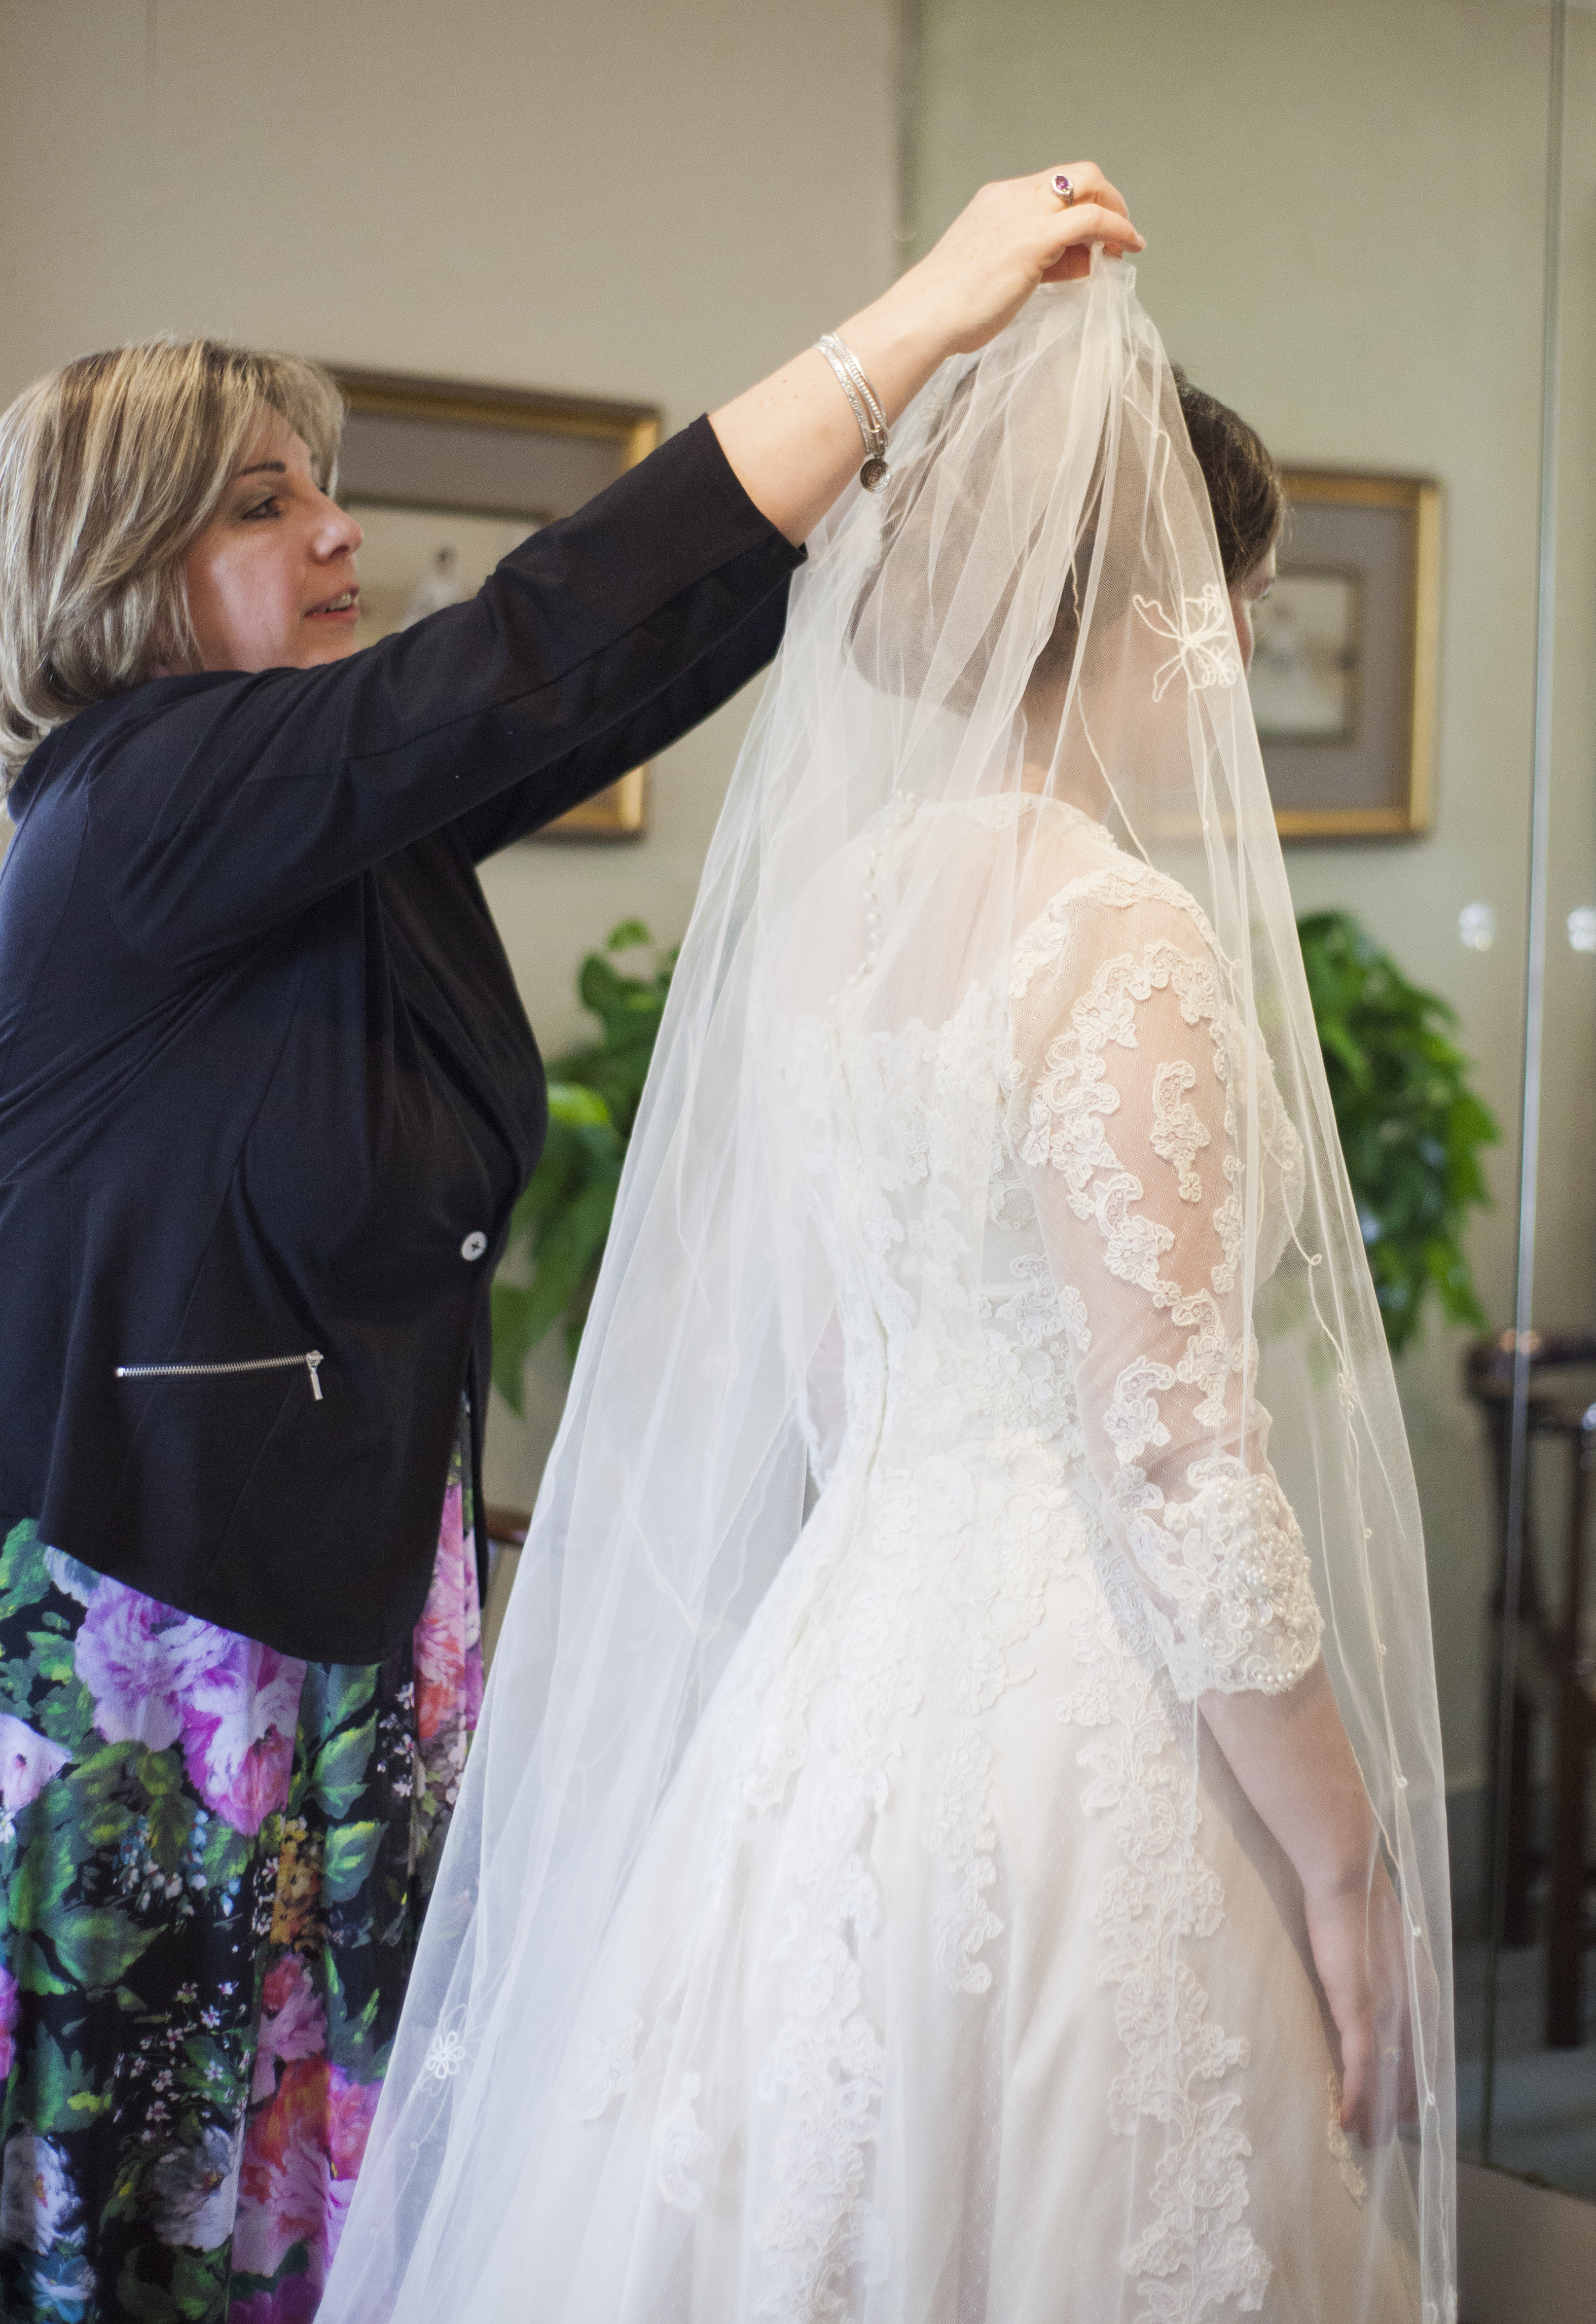 couture wedding gown shopping experience